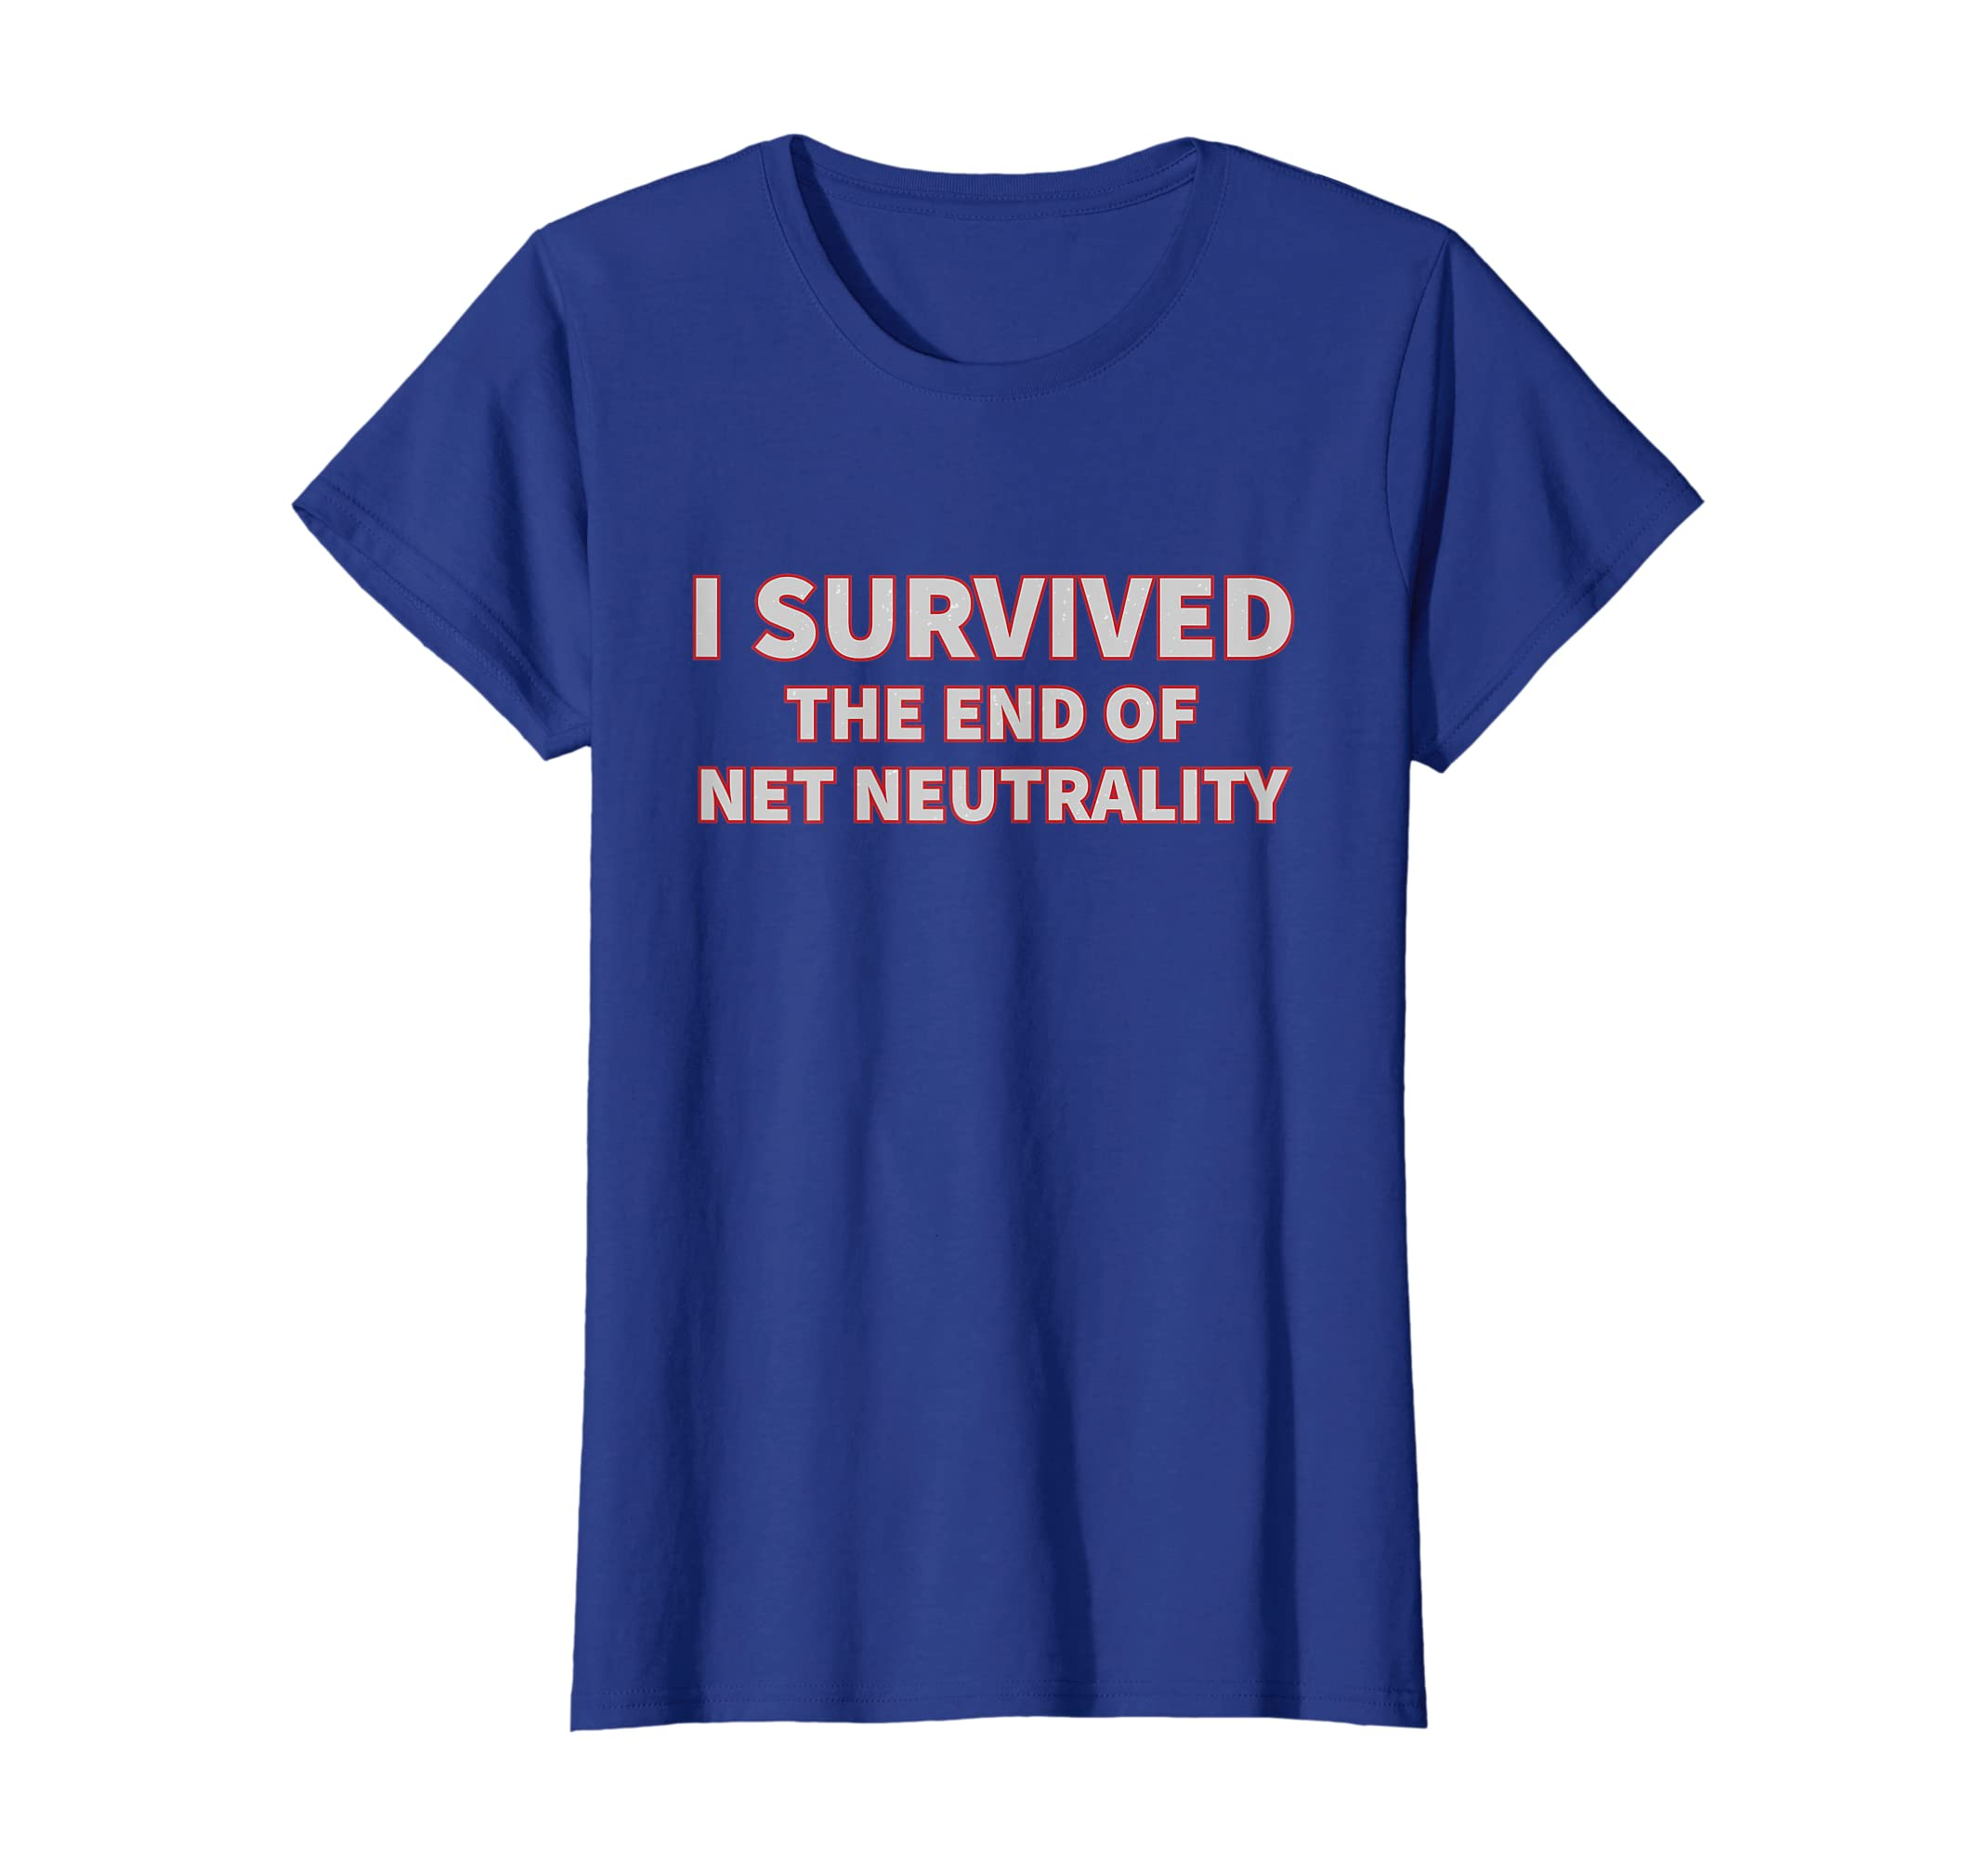 2414e9ec8 Amazon.com: I Survived the End of Net Neutrality T-Shirt: Clothing